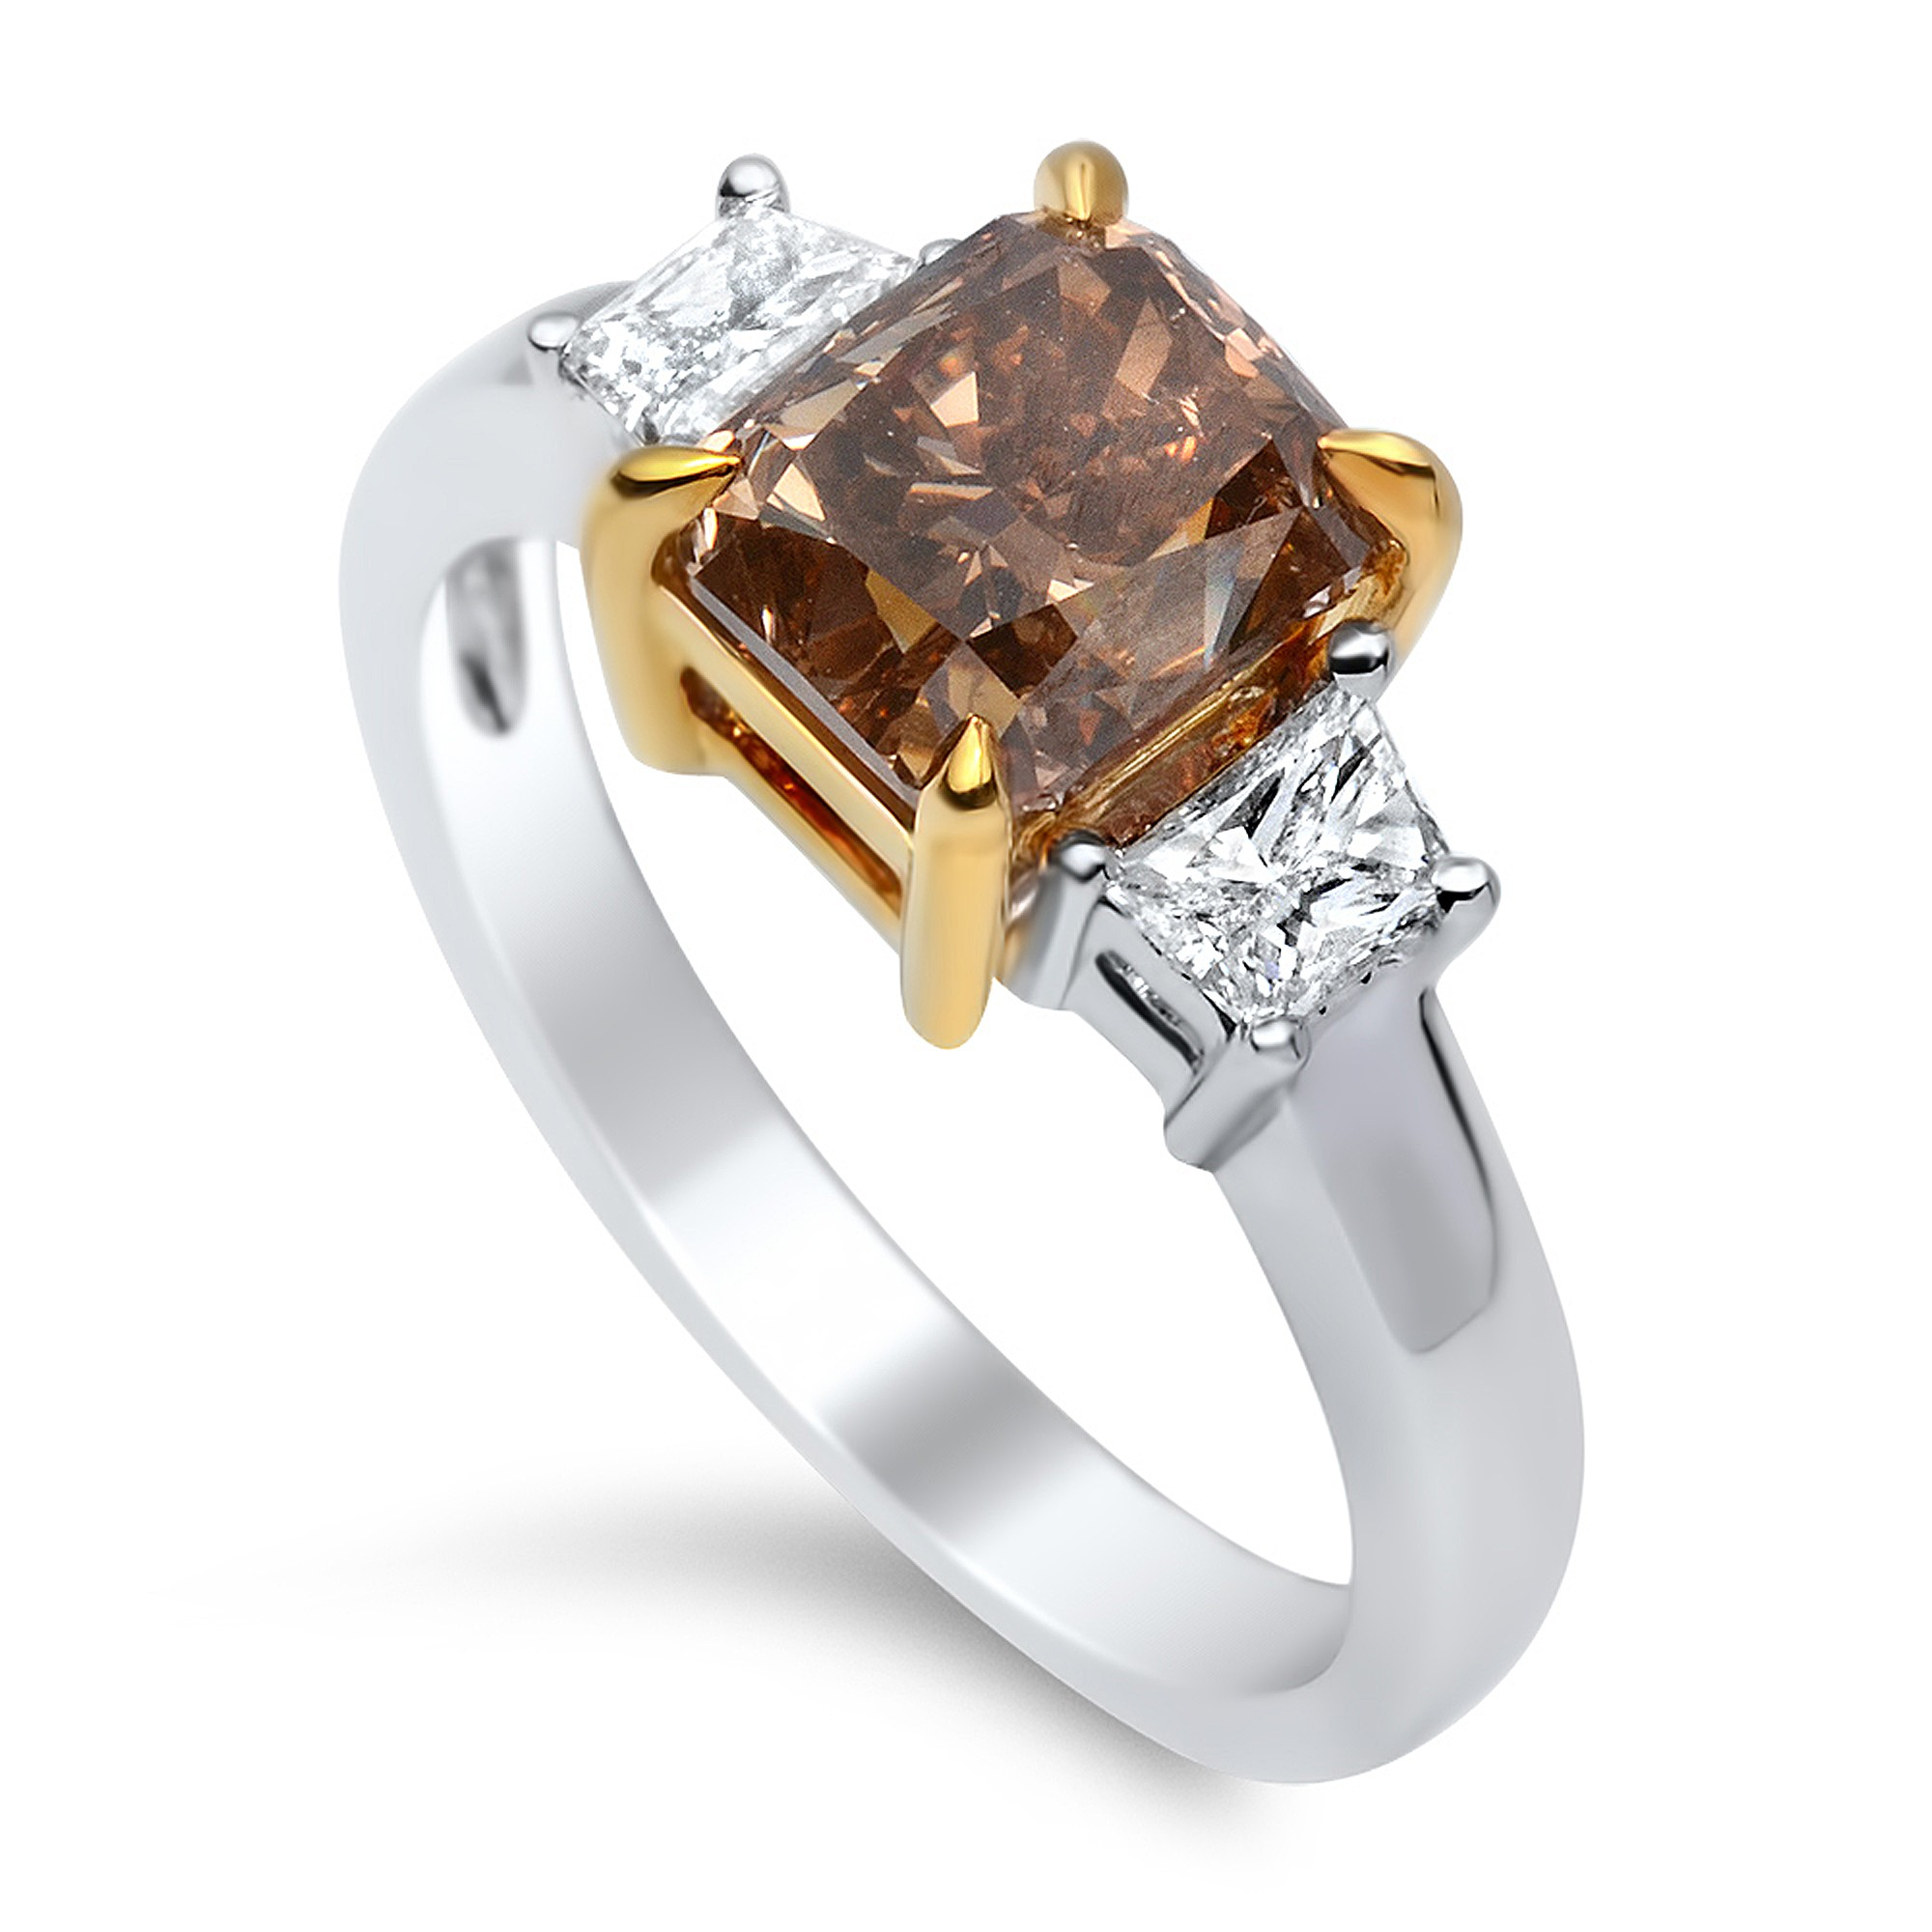 Image 8 of Colored Diamond Engagement Rings: What's the Buzz?